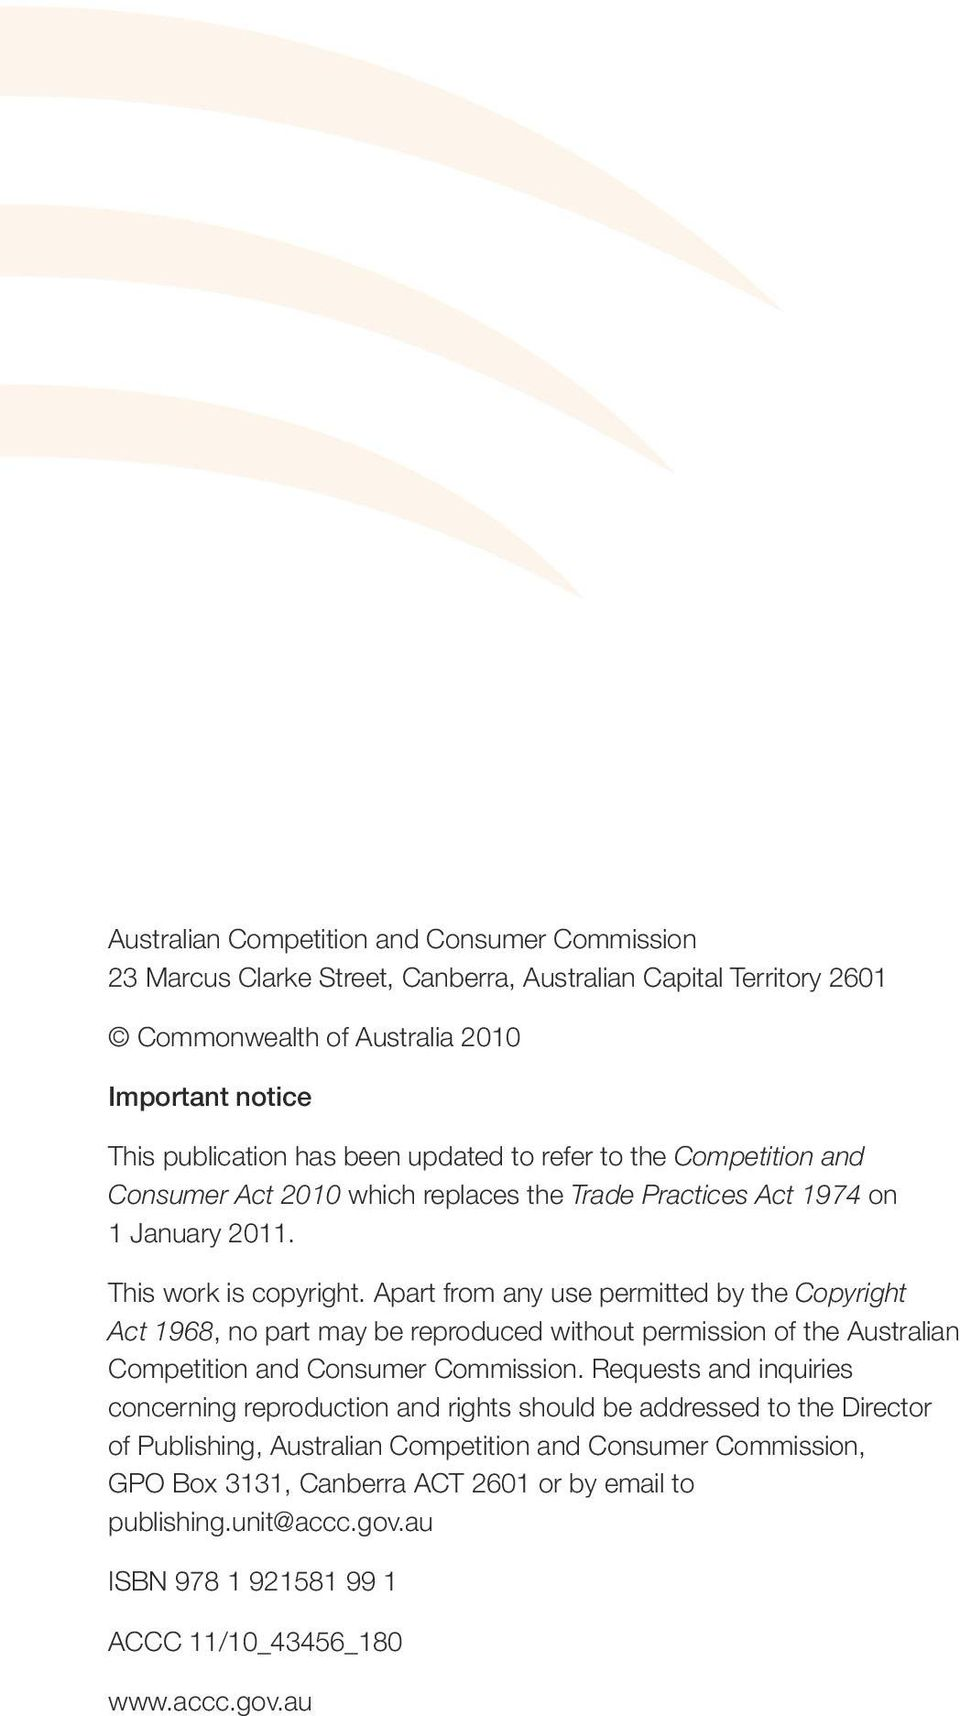 Apart from any use permitted by the Copyright Act 1968, no part may be reproduced without permission of the Australian Competition and Consumer Commission.